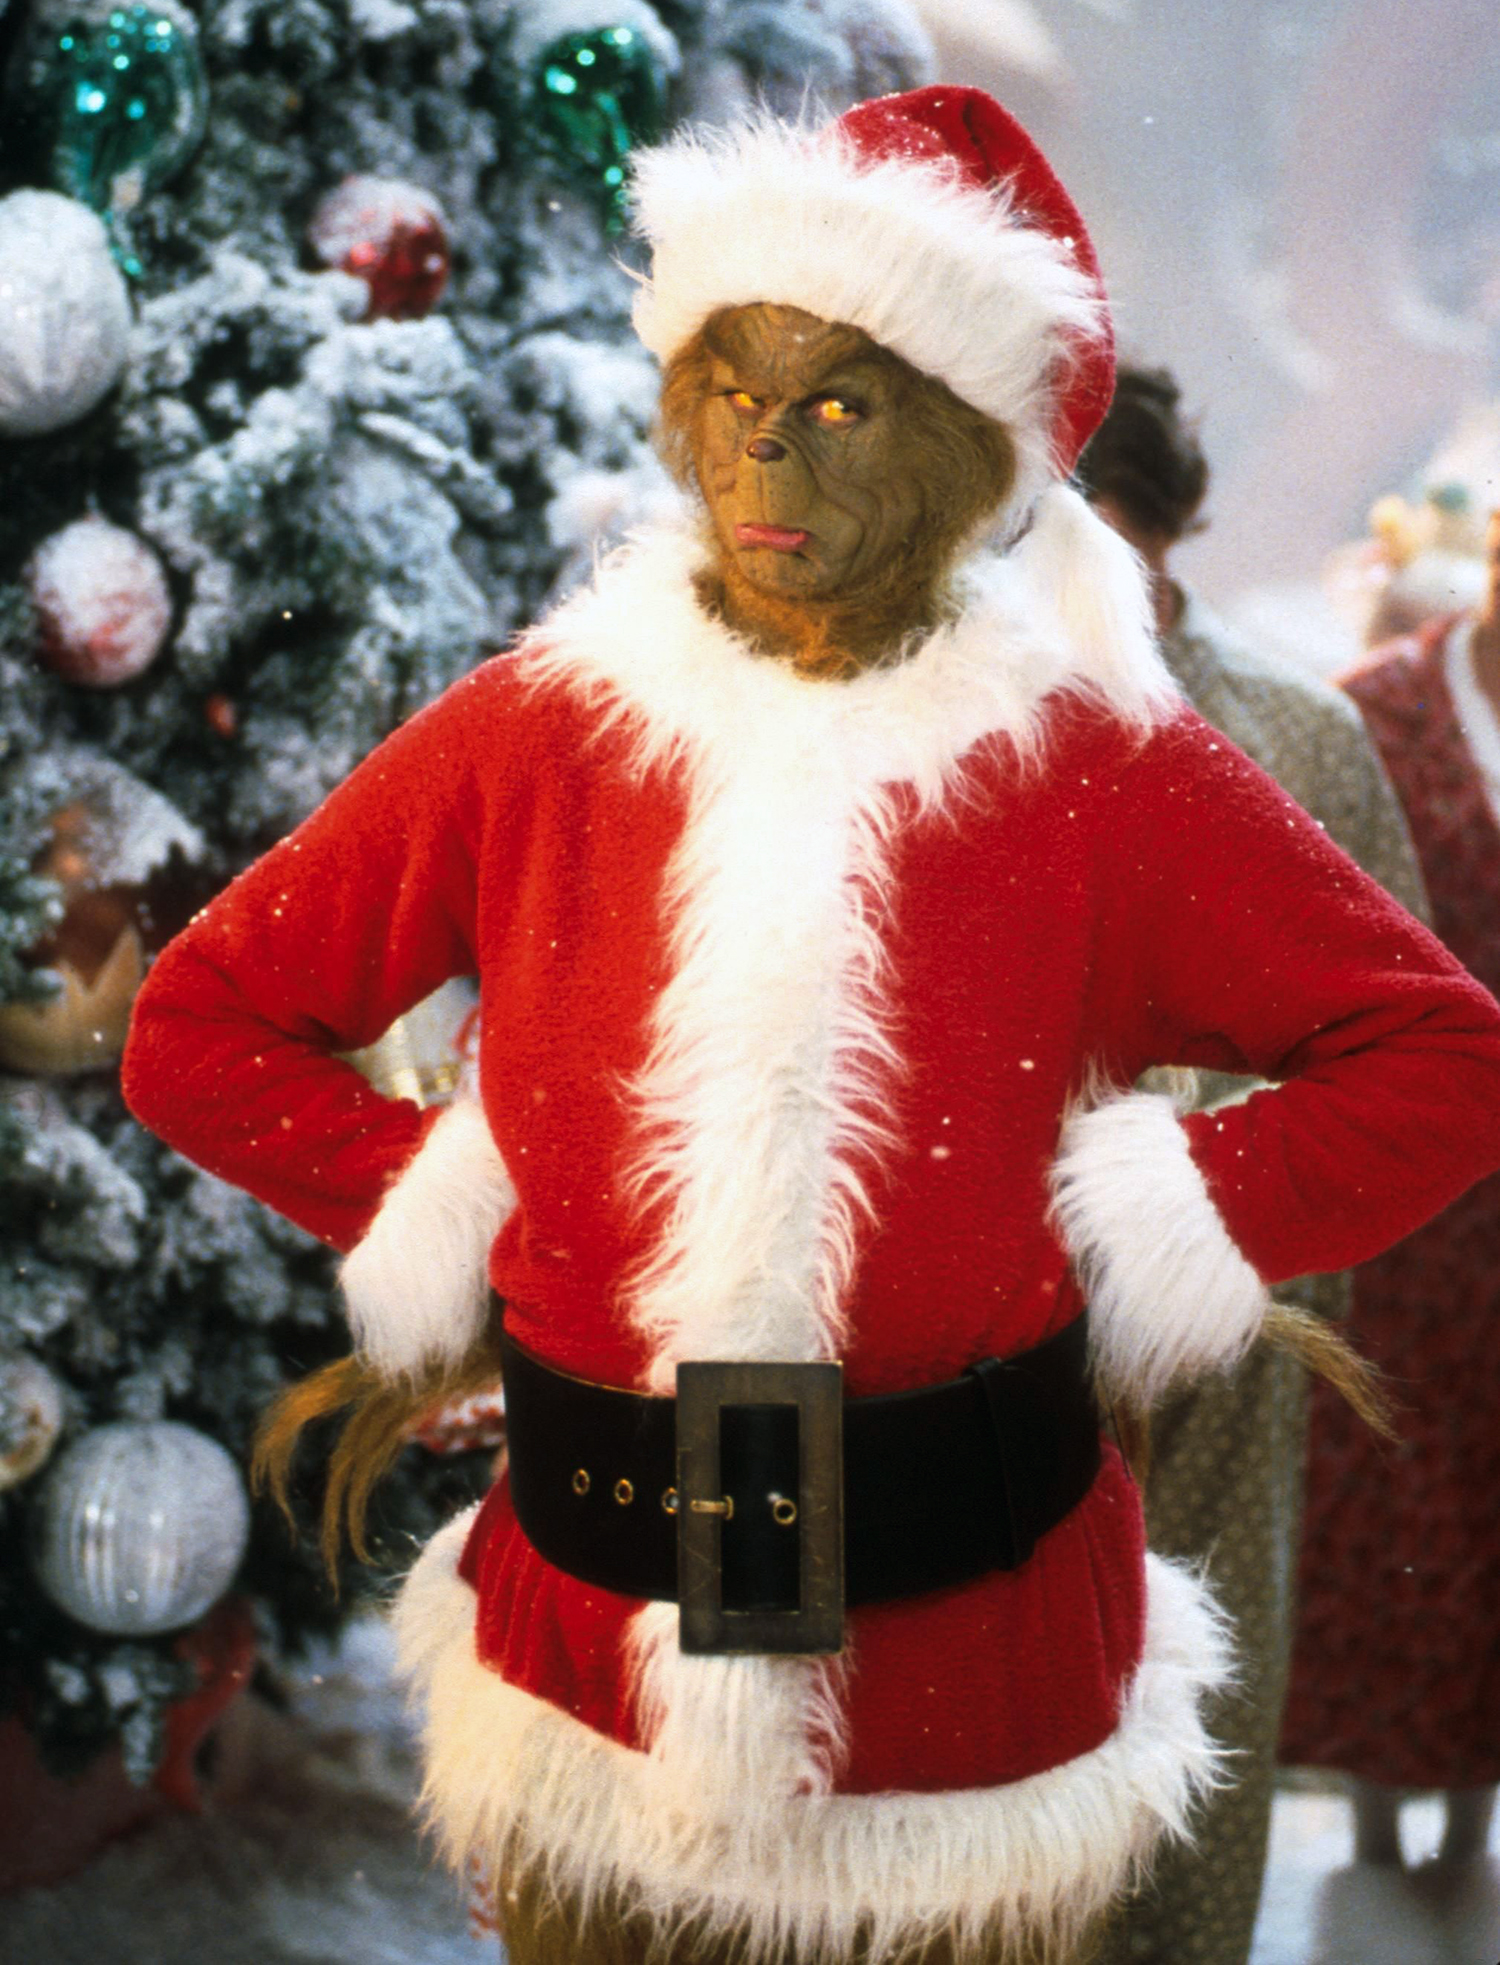 How The Grinch Stole Christmas Movie.6 Movie Night How The Grinch Stole Christmas Admiral Theatre